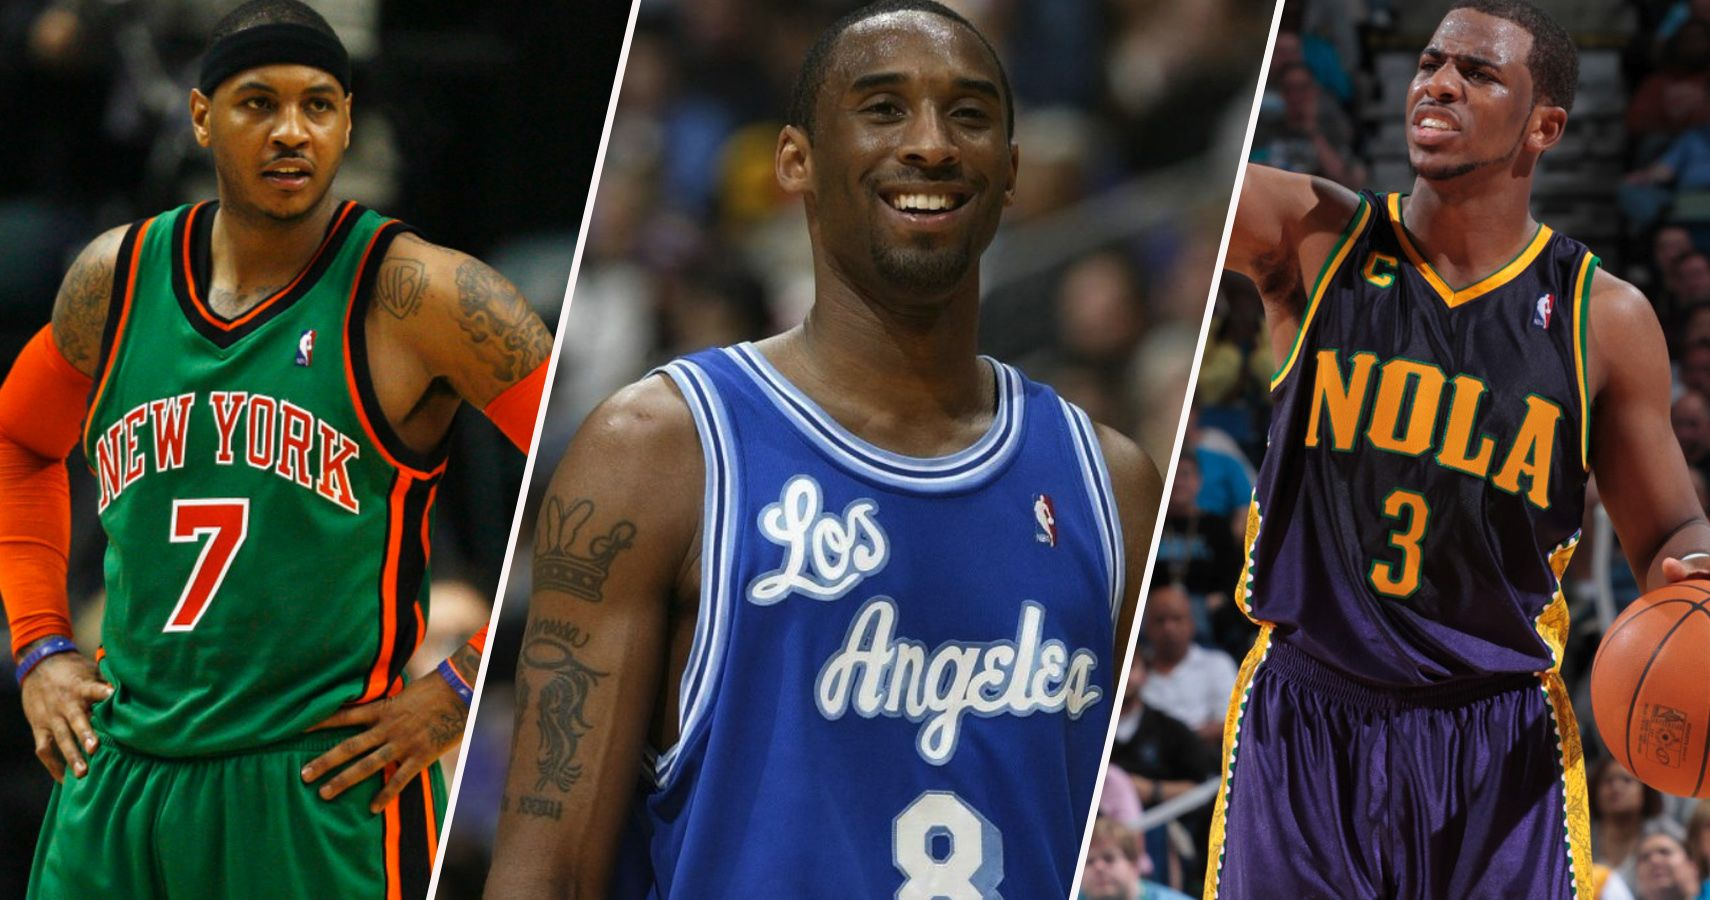 af008f95978 10 Alternate NBA Jerseys That Need To Make A Comeback (And 10 That Should  Stay Forgotten)